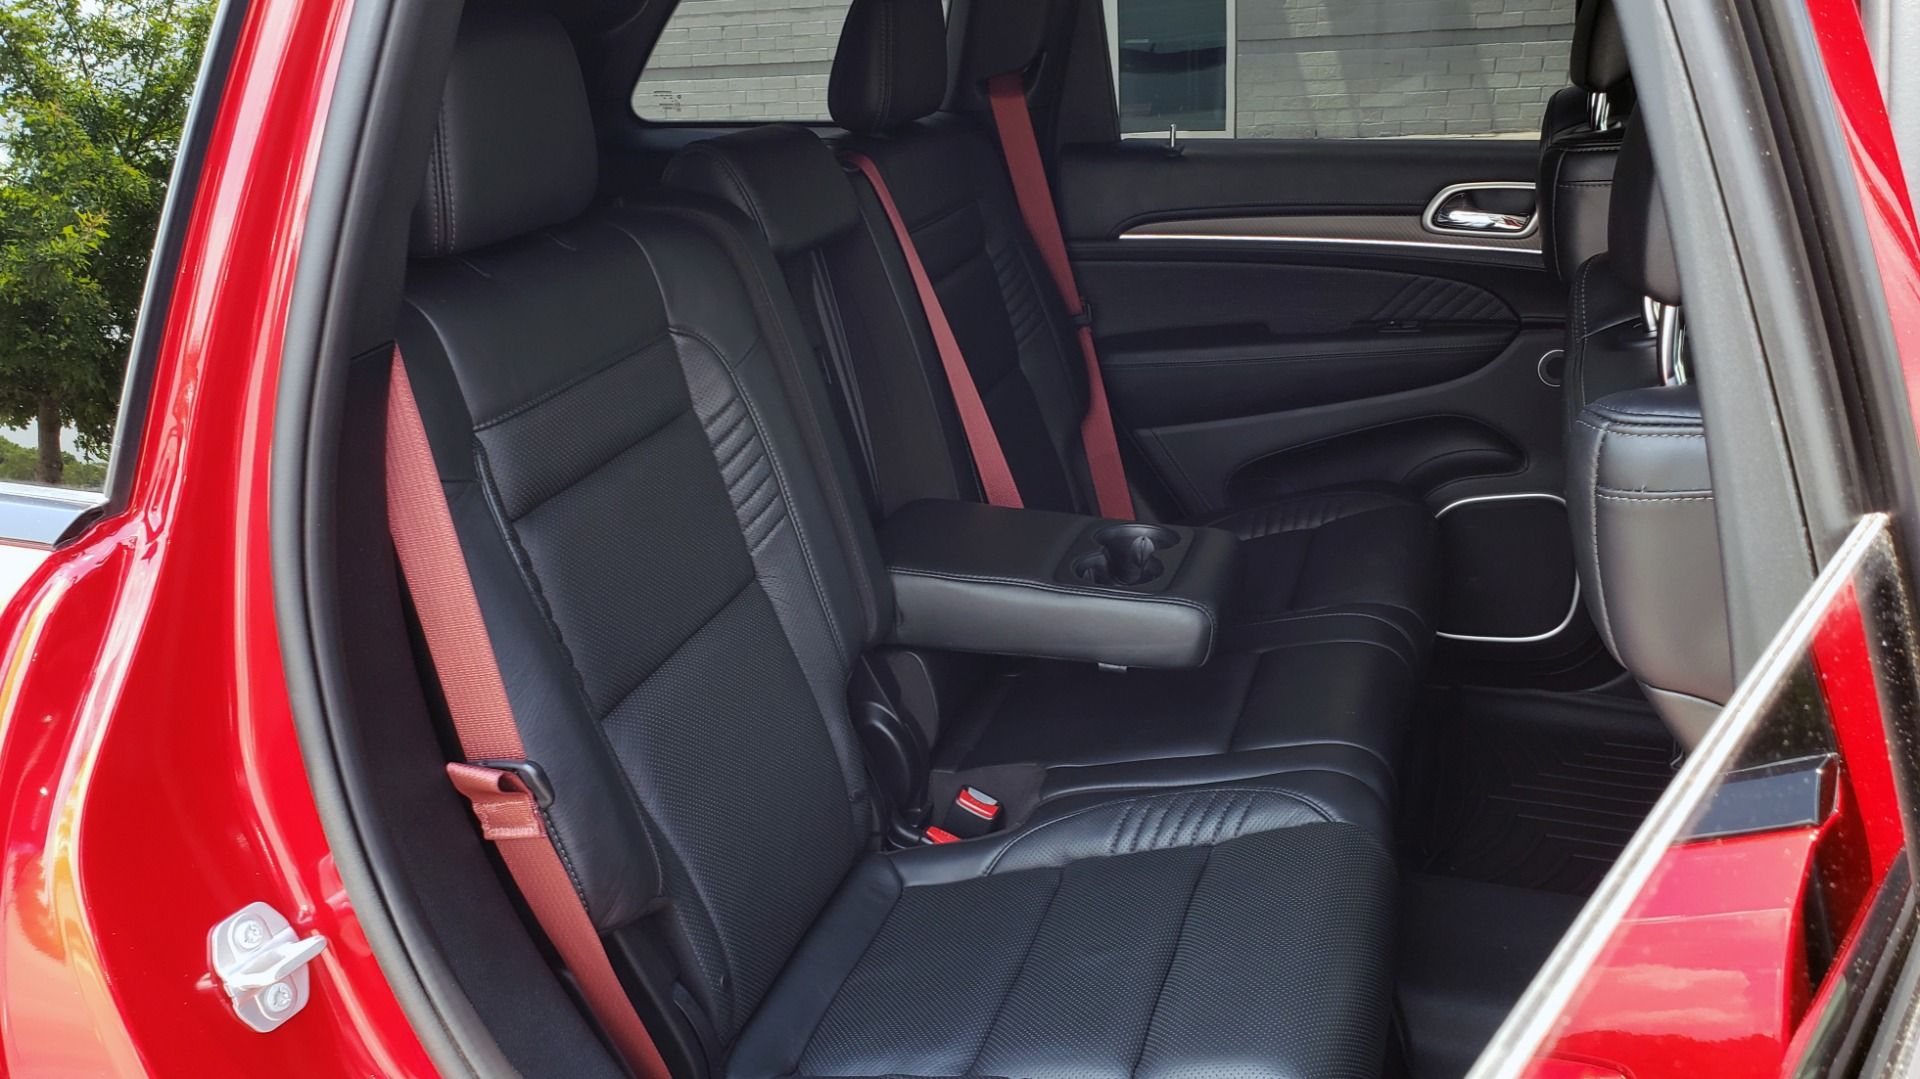 Used 2018 Jeep GRAND CHEROKEE SRT 4X4 / 6.4L HEMI (475HP) / NAV / SUNROOF / H/K SND / REARVIEW for sale Sold at Formula Imports in Charlotte NC 28227 82